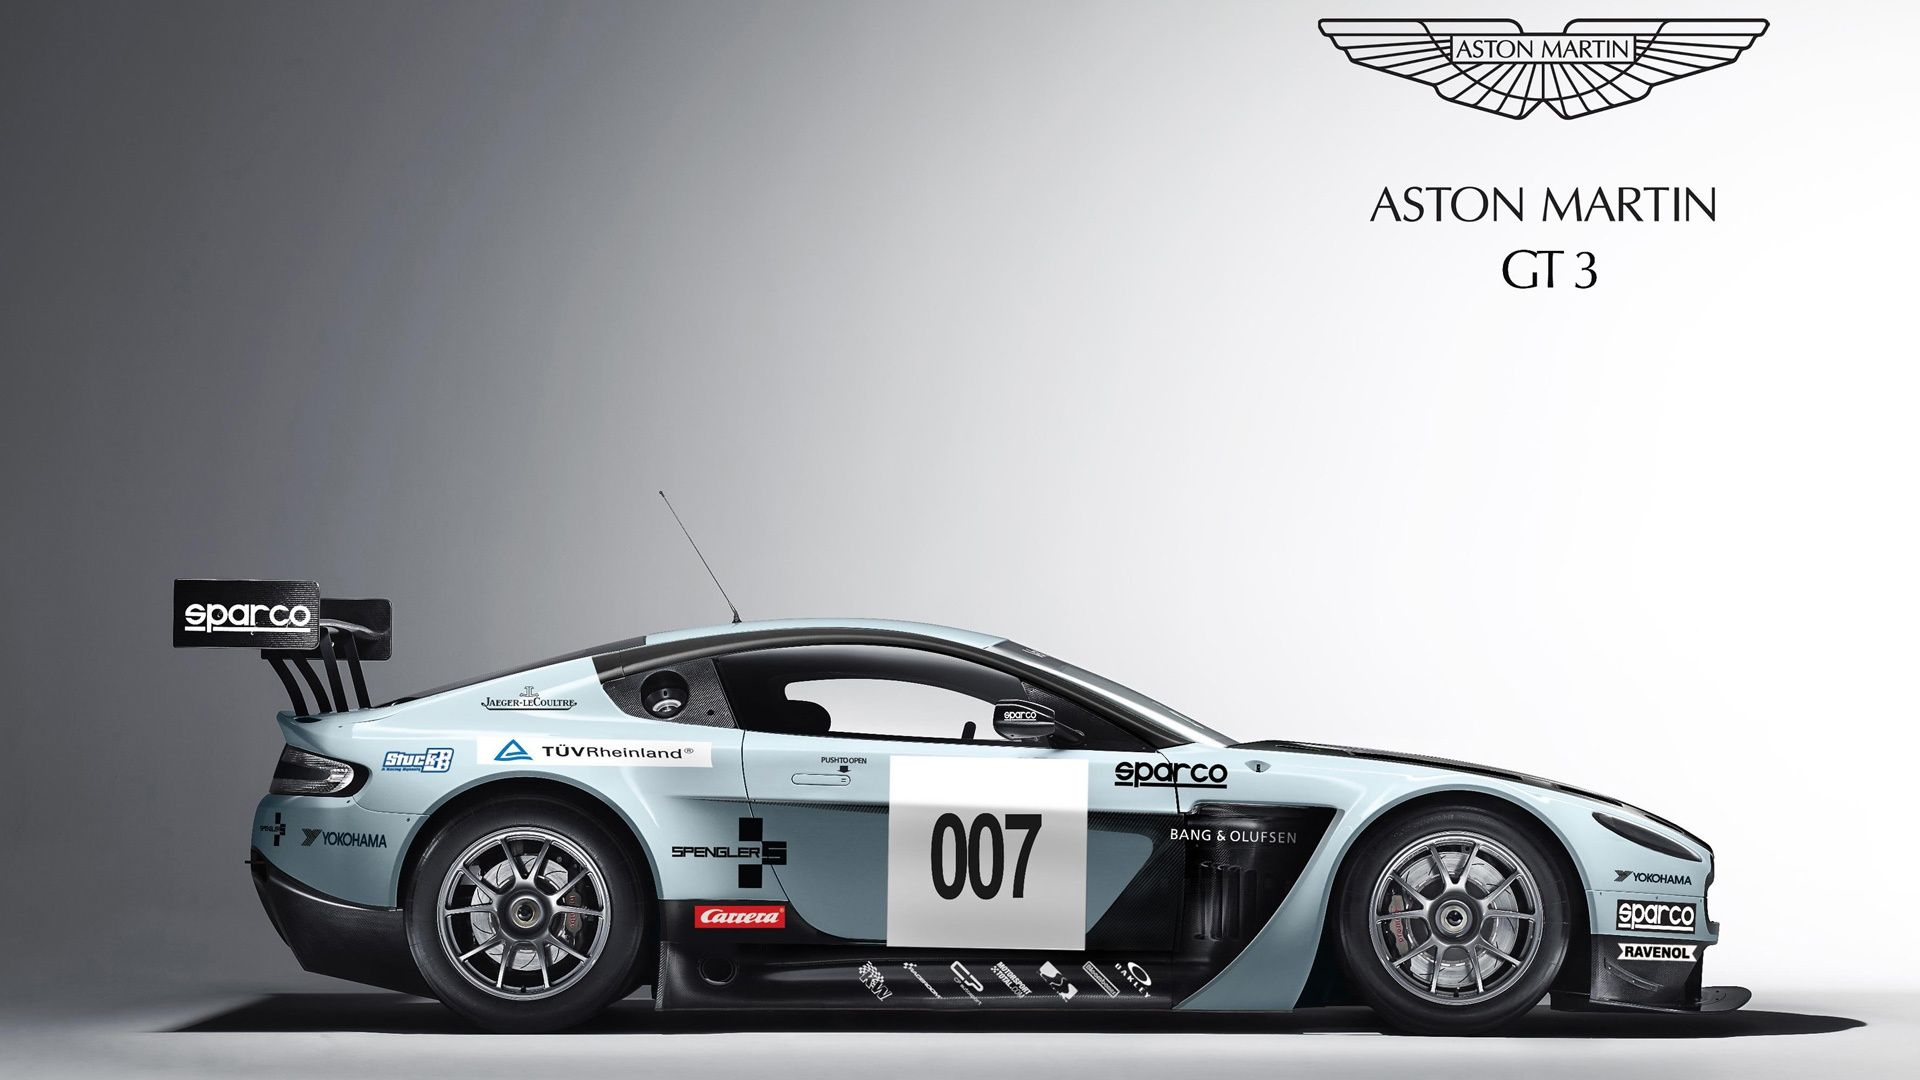 Free Download Pure 100 Aston Martin Hd Wallpapers Latest